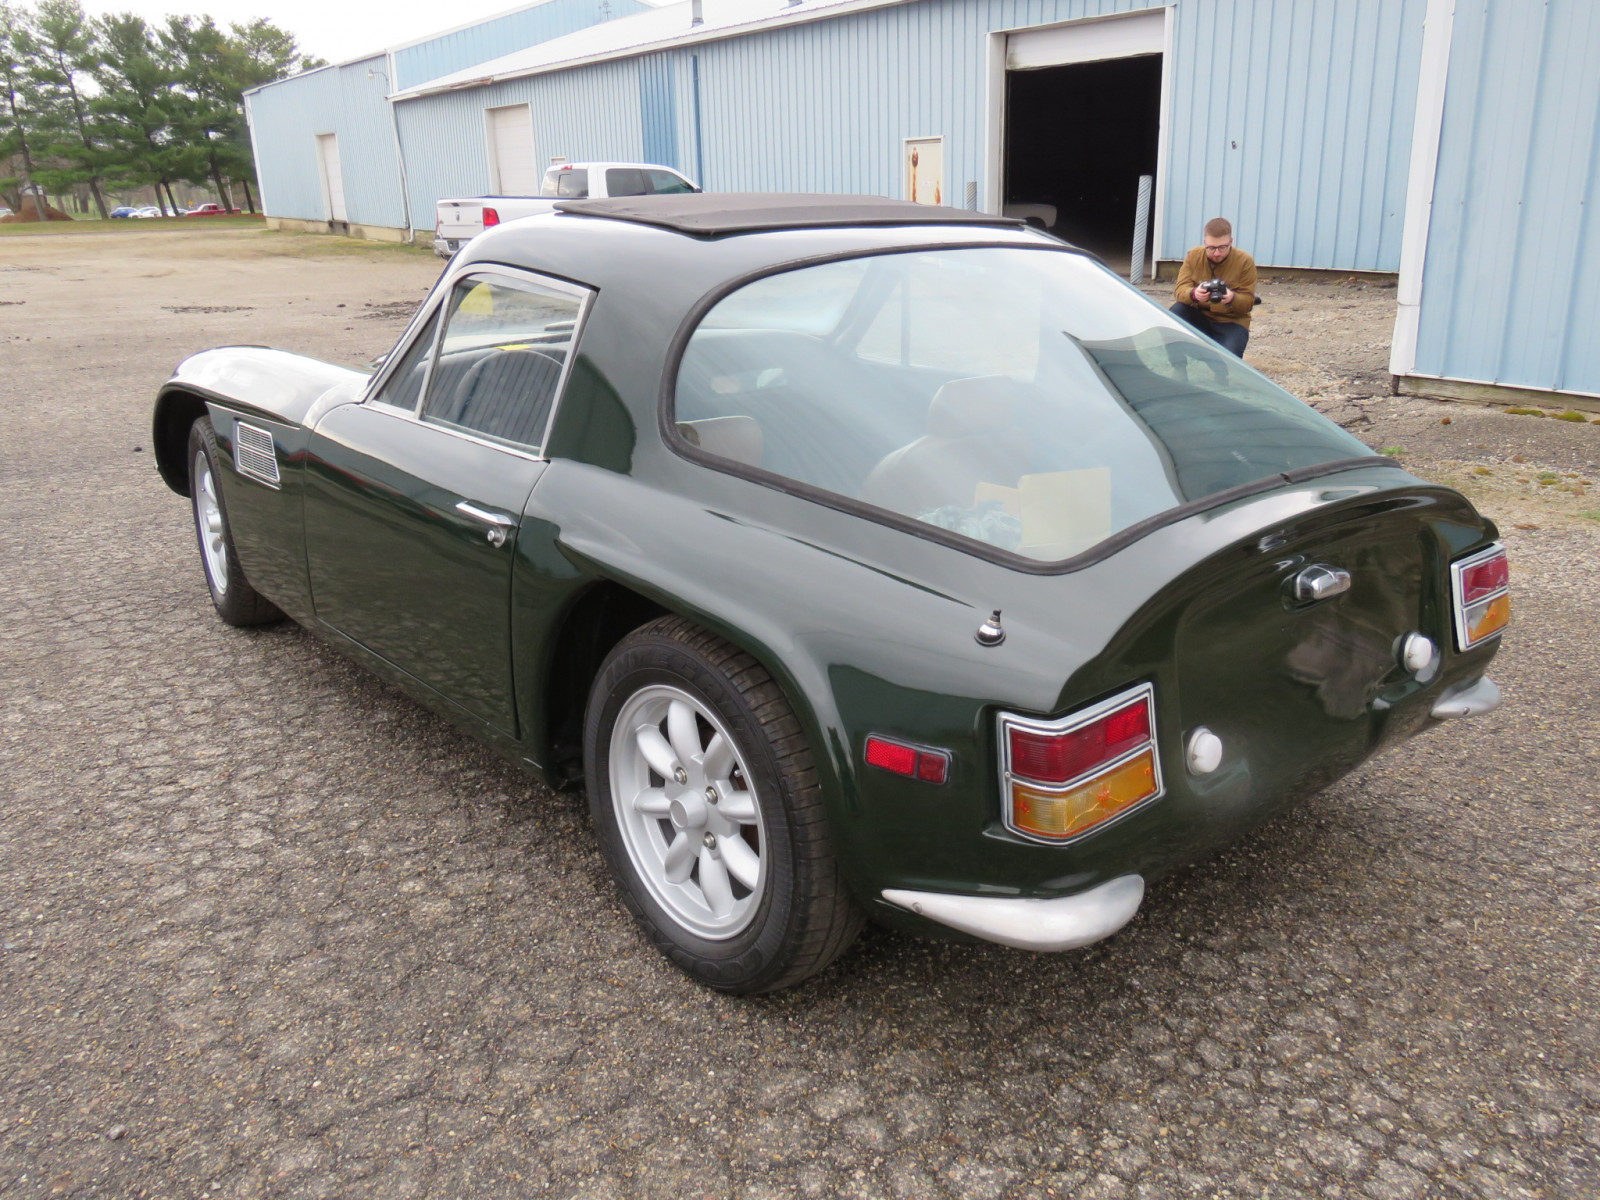 1972 TVR 2500M Coupe - Image 7